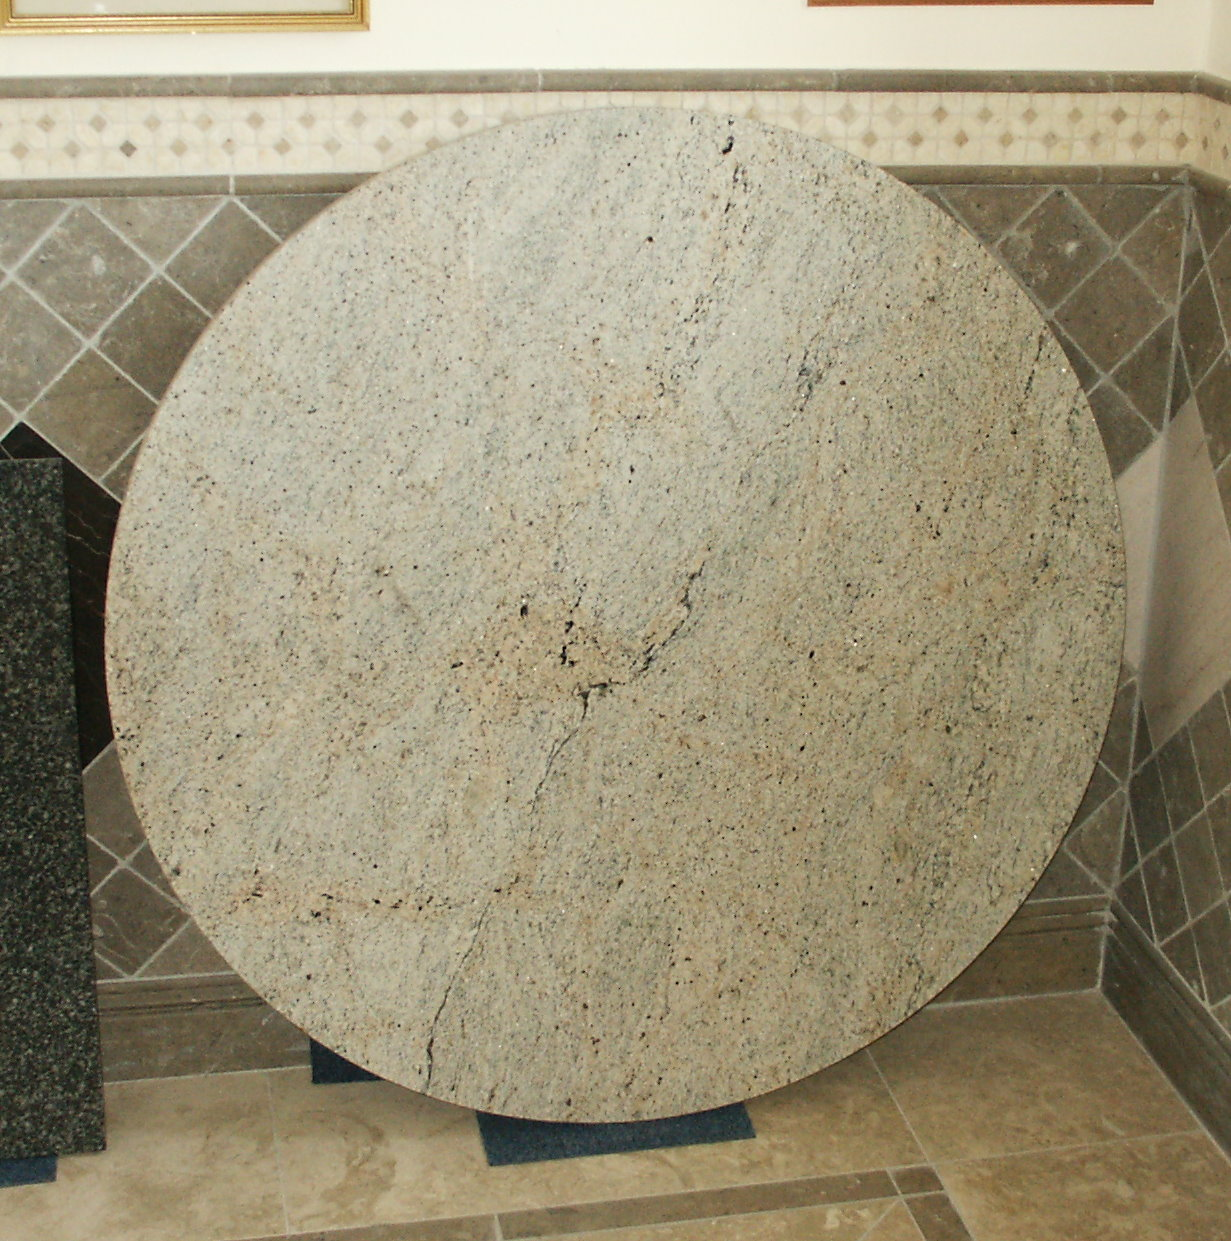 Delightful Imperial White Granite Table Top